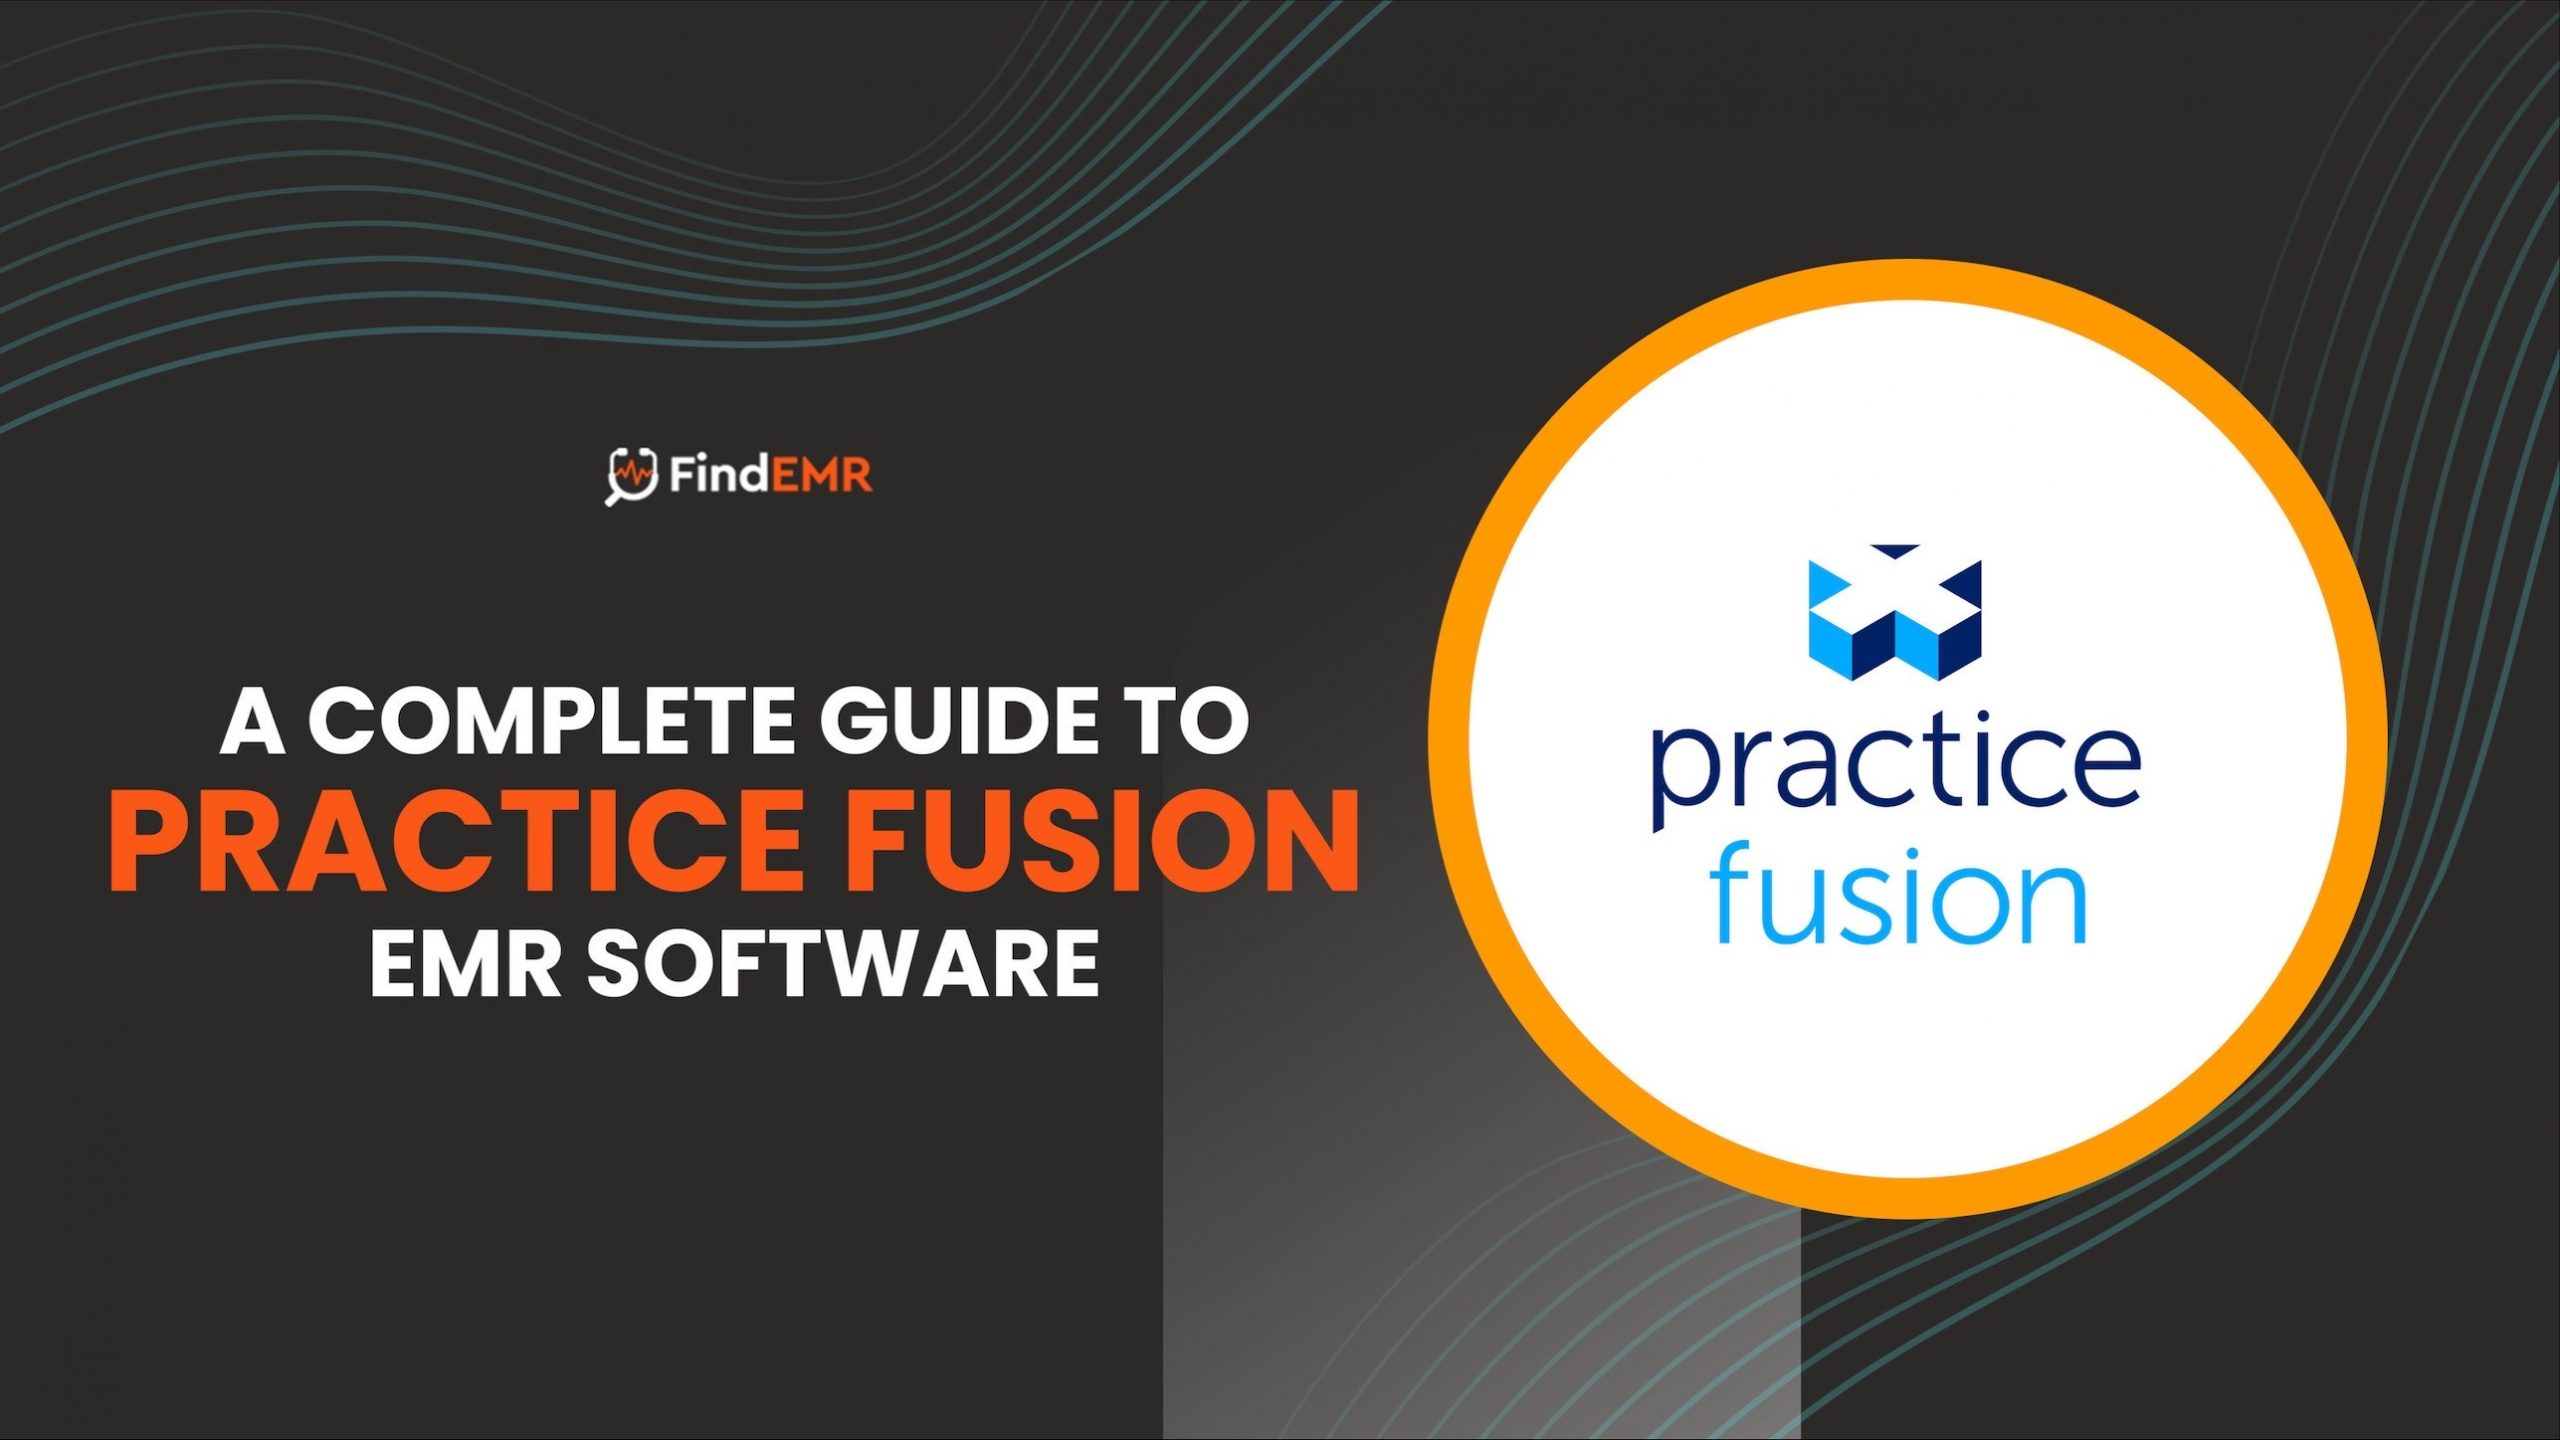 A Complete Guide to Practice Fusion EMR Software